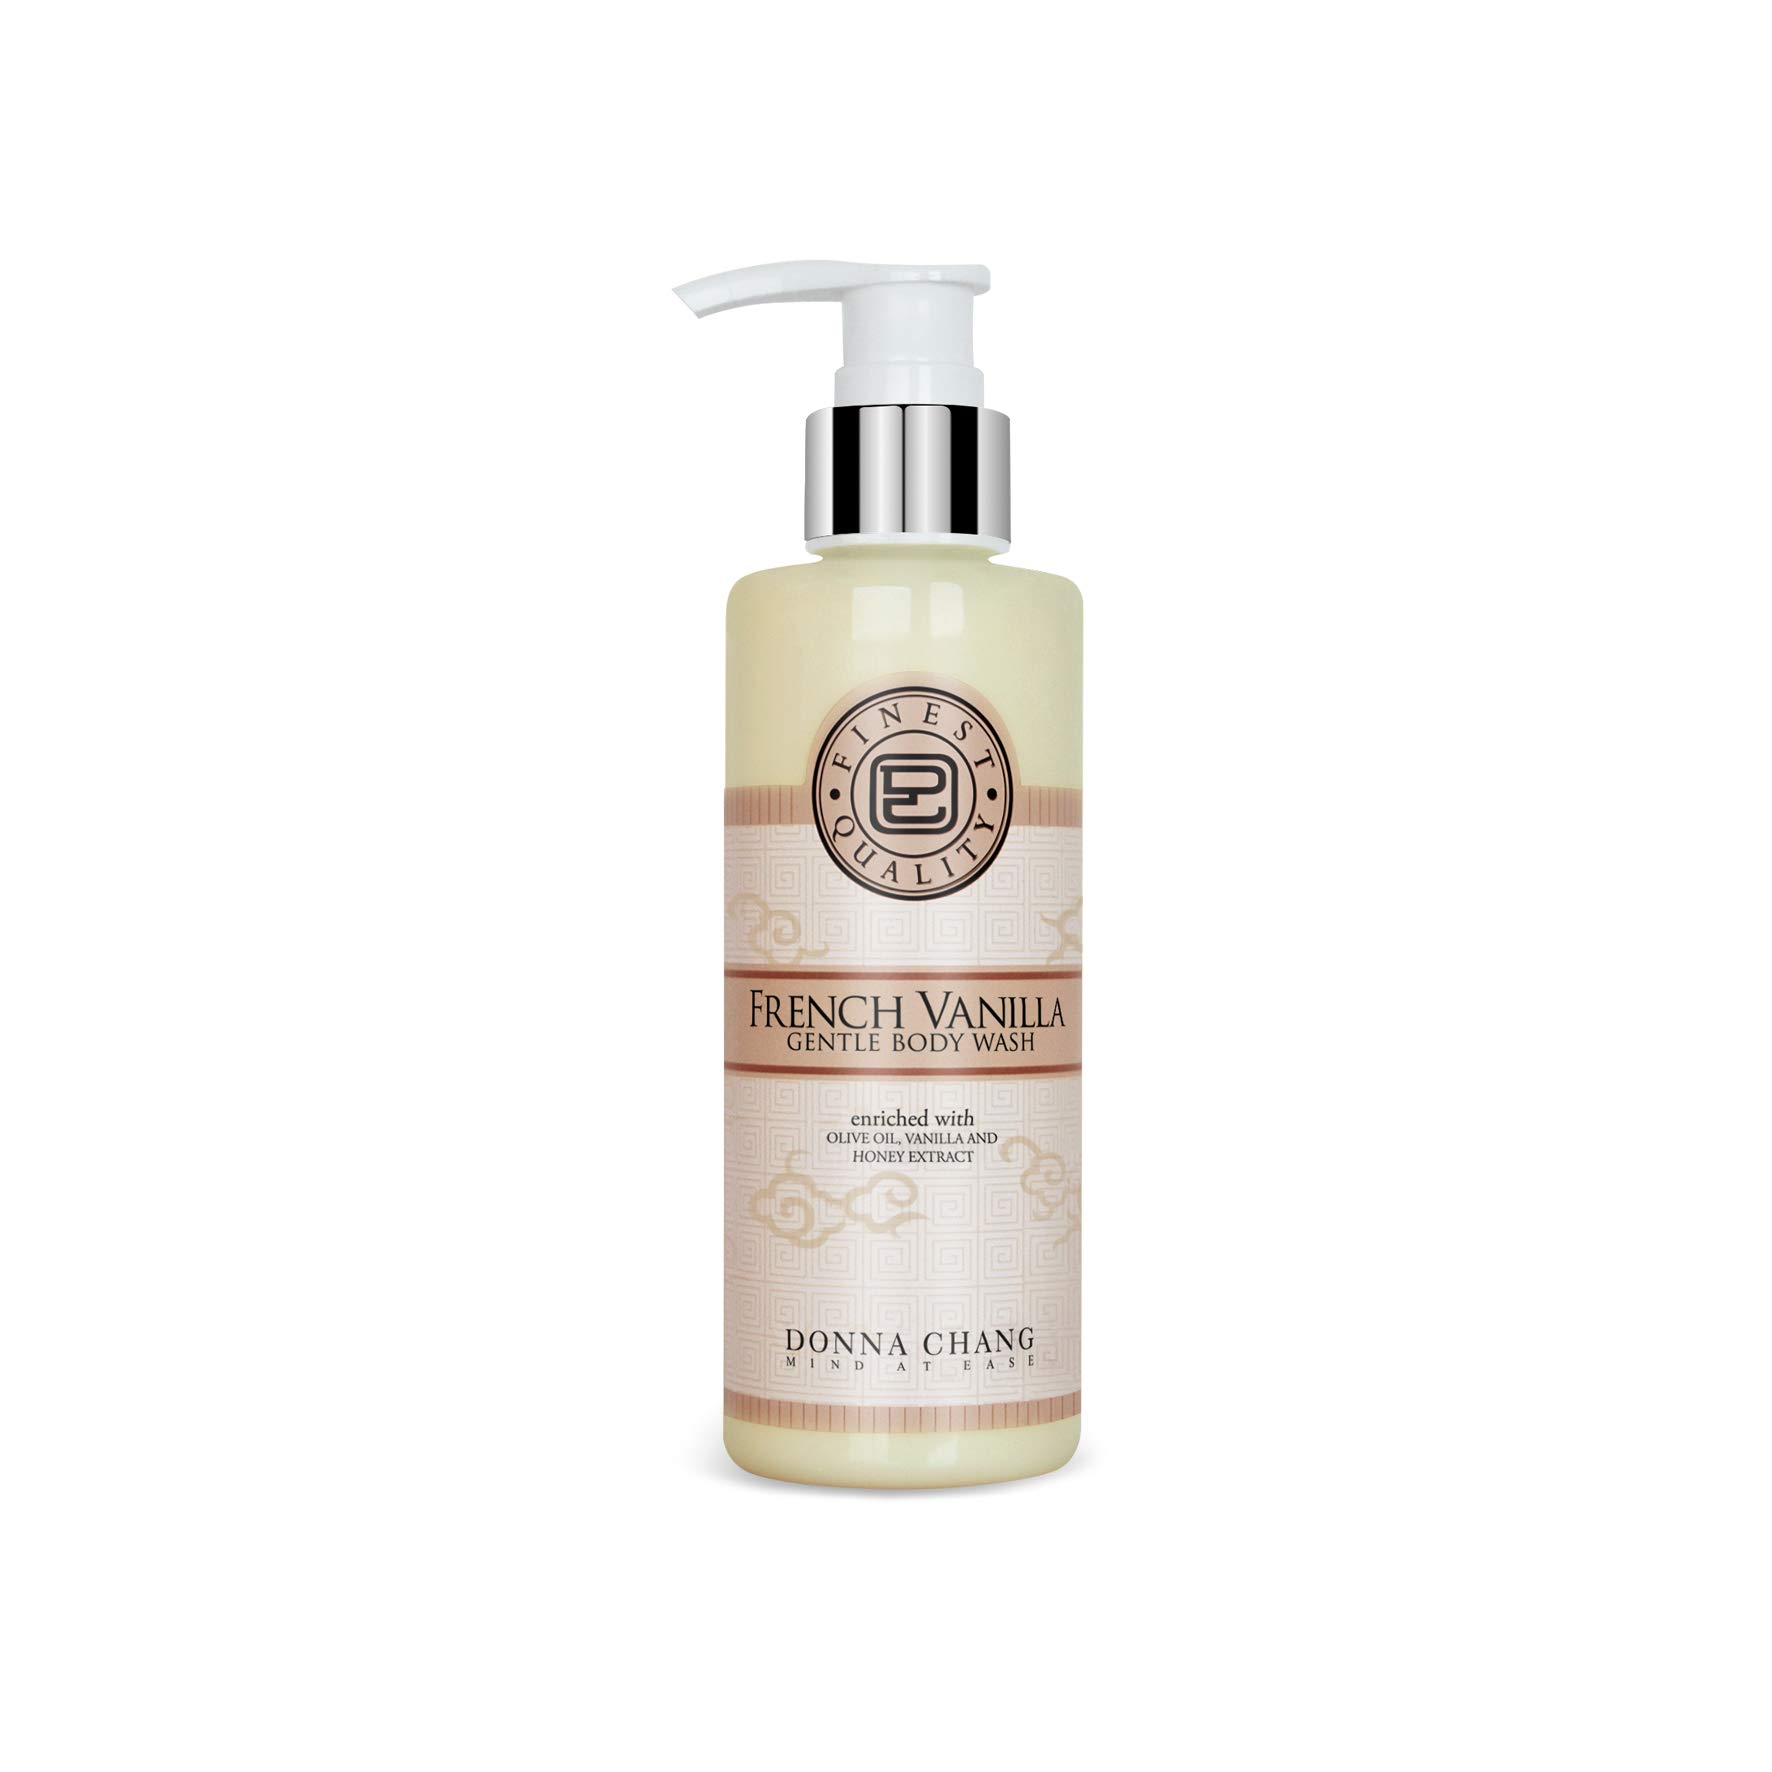 DONNA CHANG French Vanilla Gentle Body Wash 200 ml. (4 Pack)